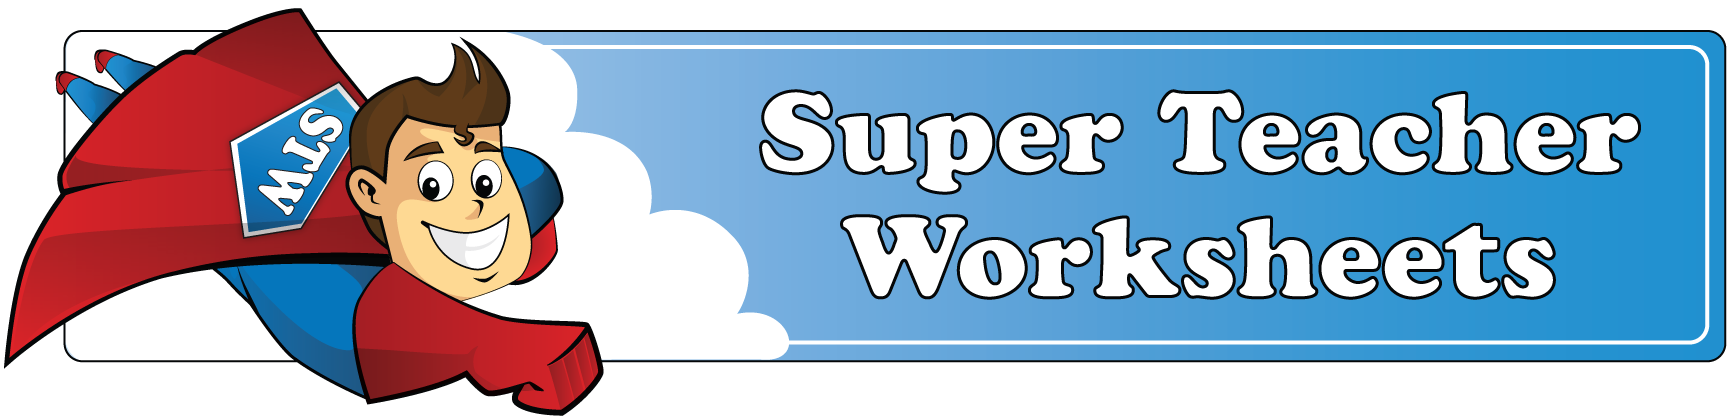 png library Printable worksheets for homeschool. Free mothers clipart superteacher.